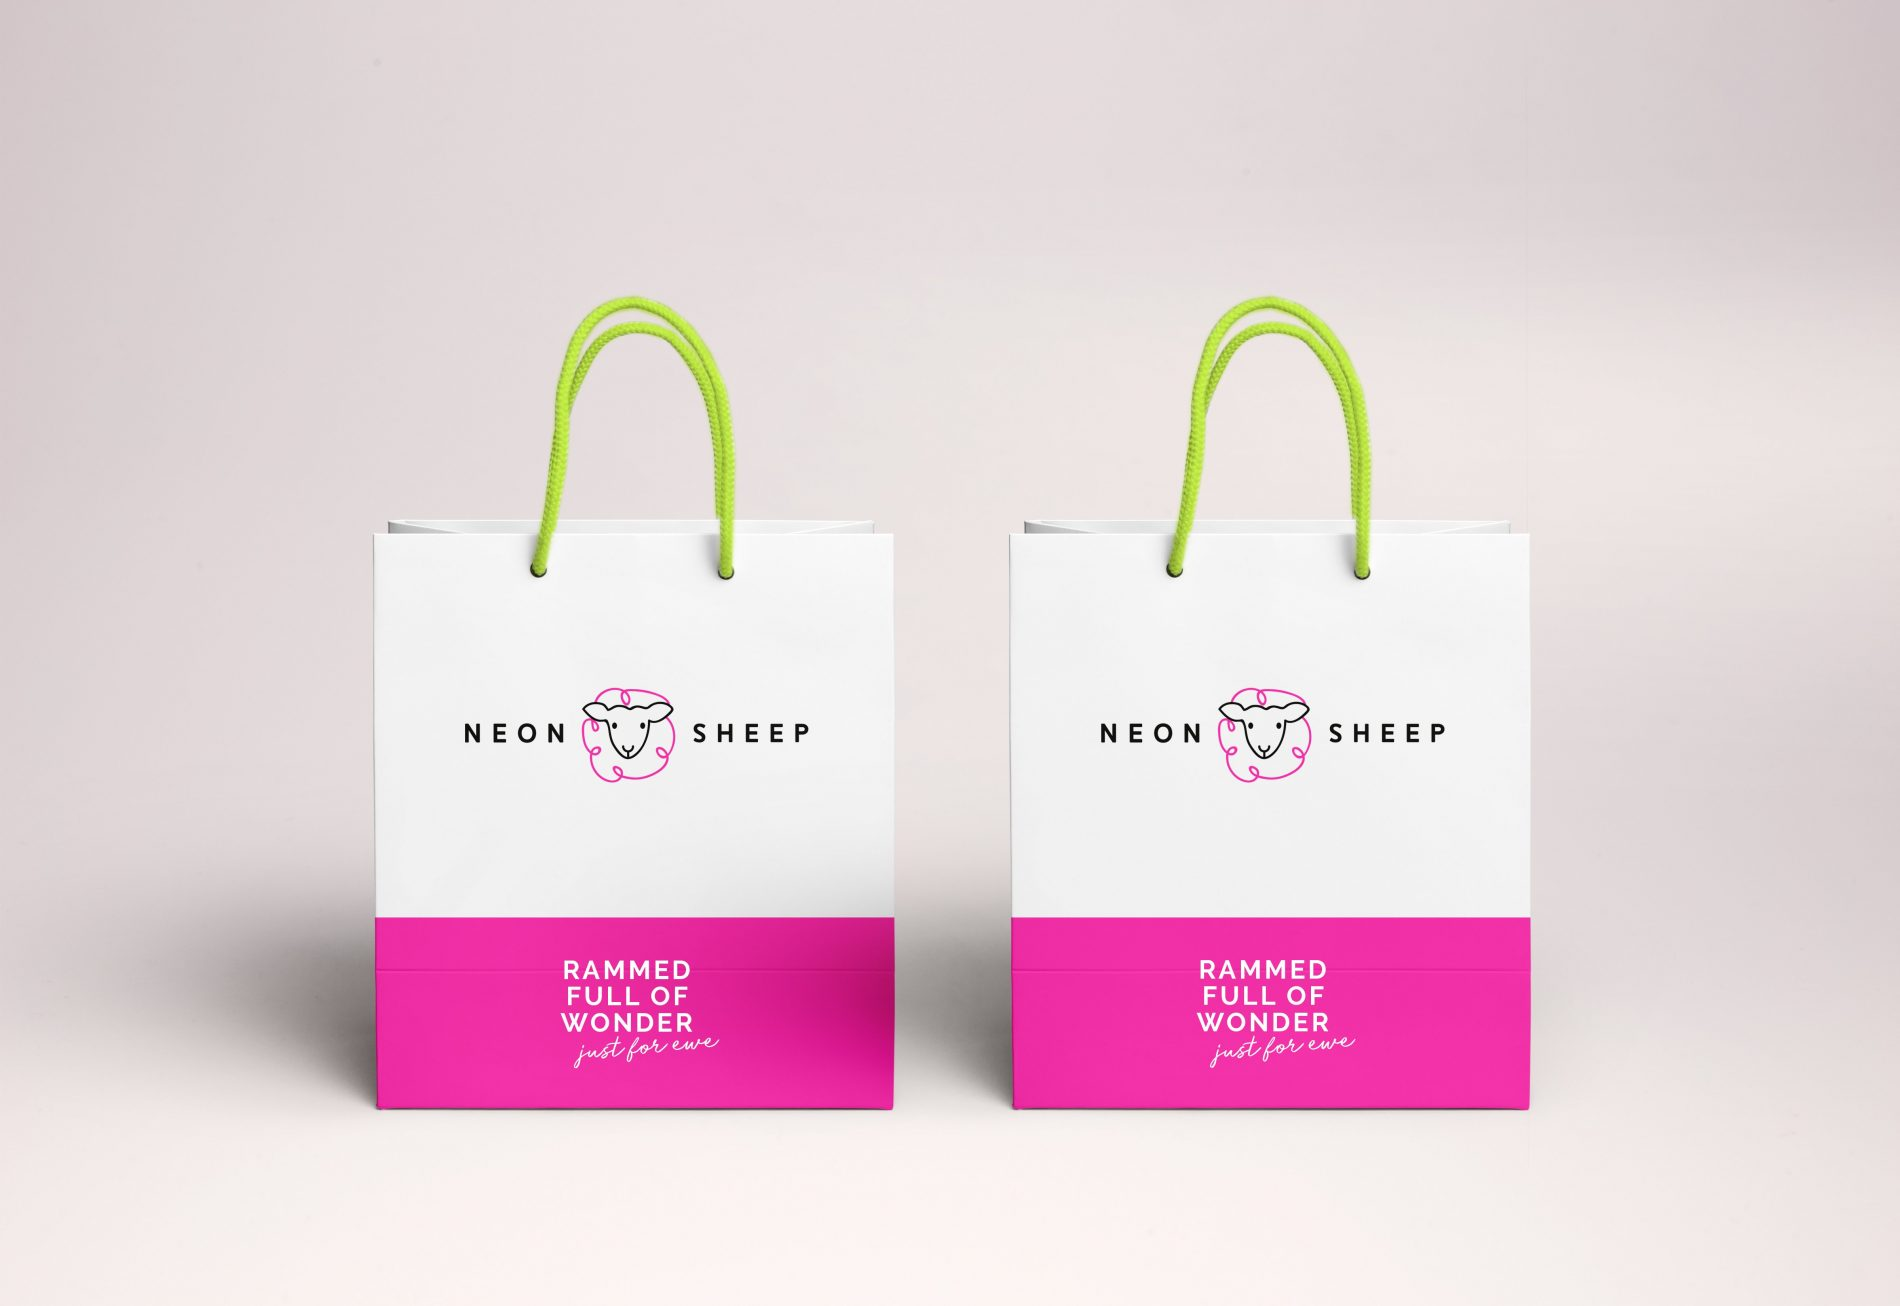 Branded Neon Sheep shopping bags reading 'rammed full of wonder'